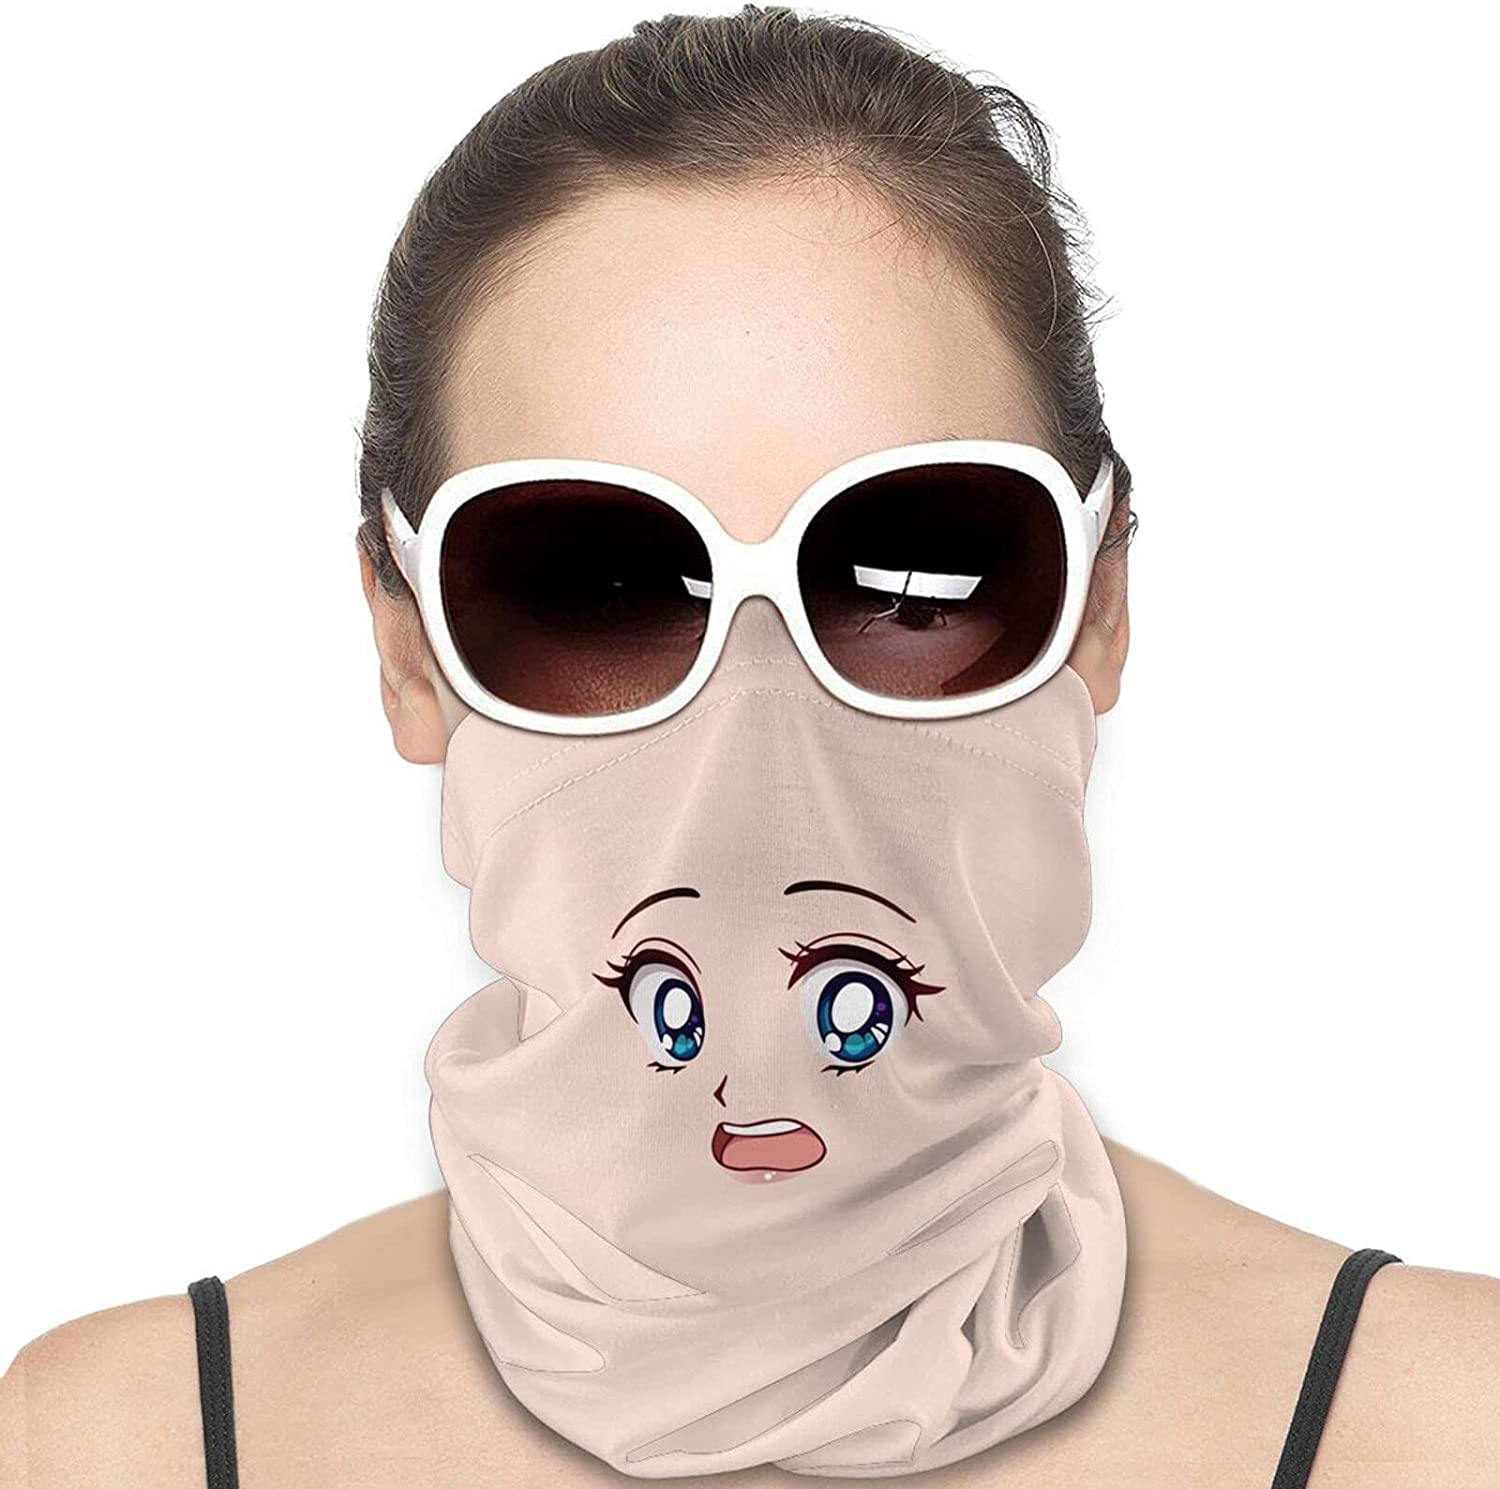 Anime Face Round Neck Gaiter Bandnas Face Cover Uv Protection Prevent bask in Ice Scarf Headbands Perfect for Motorcycle Cycling Running Festival Raves Outdoors